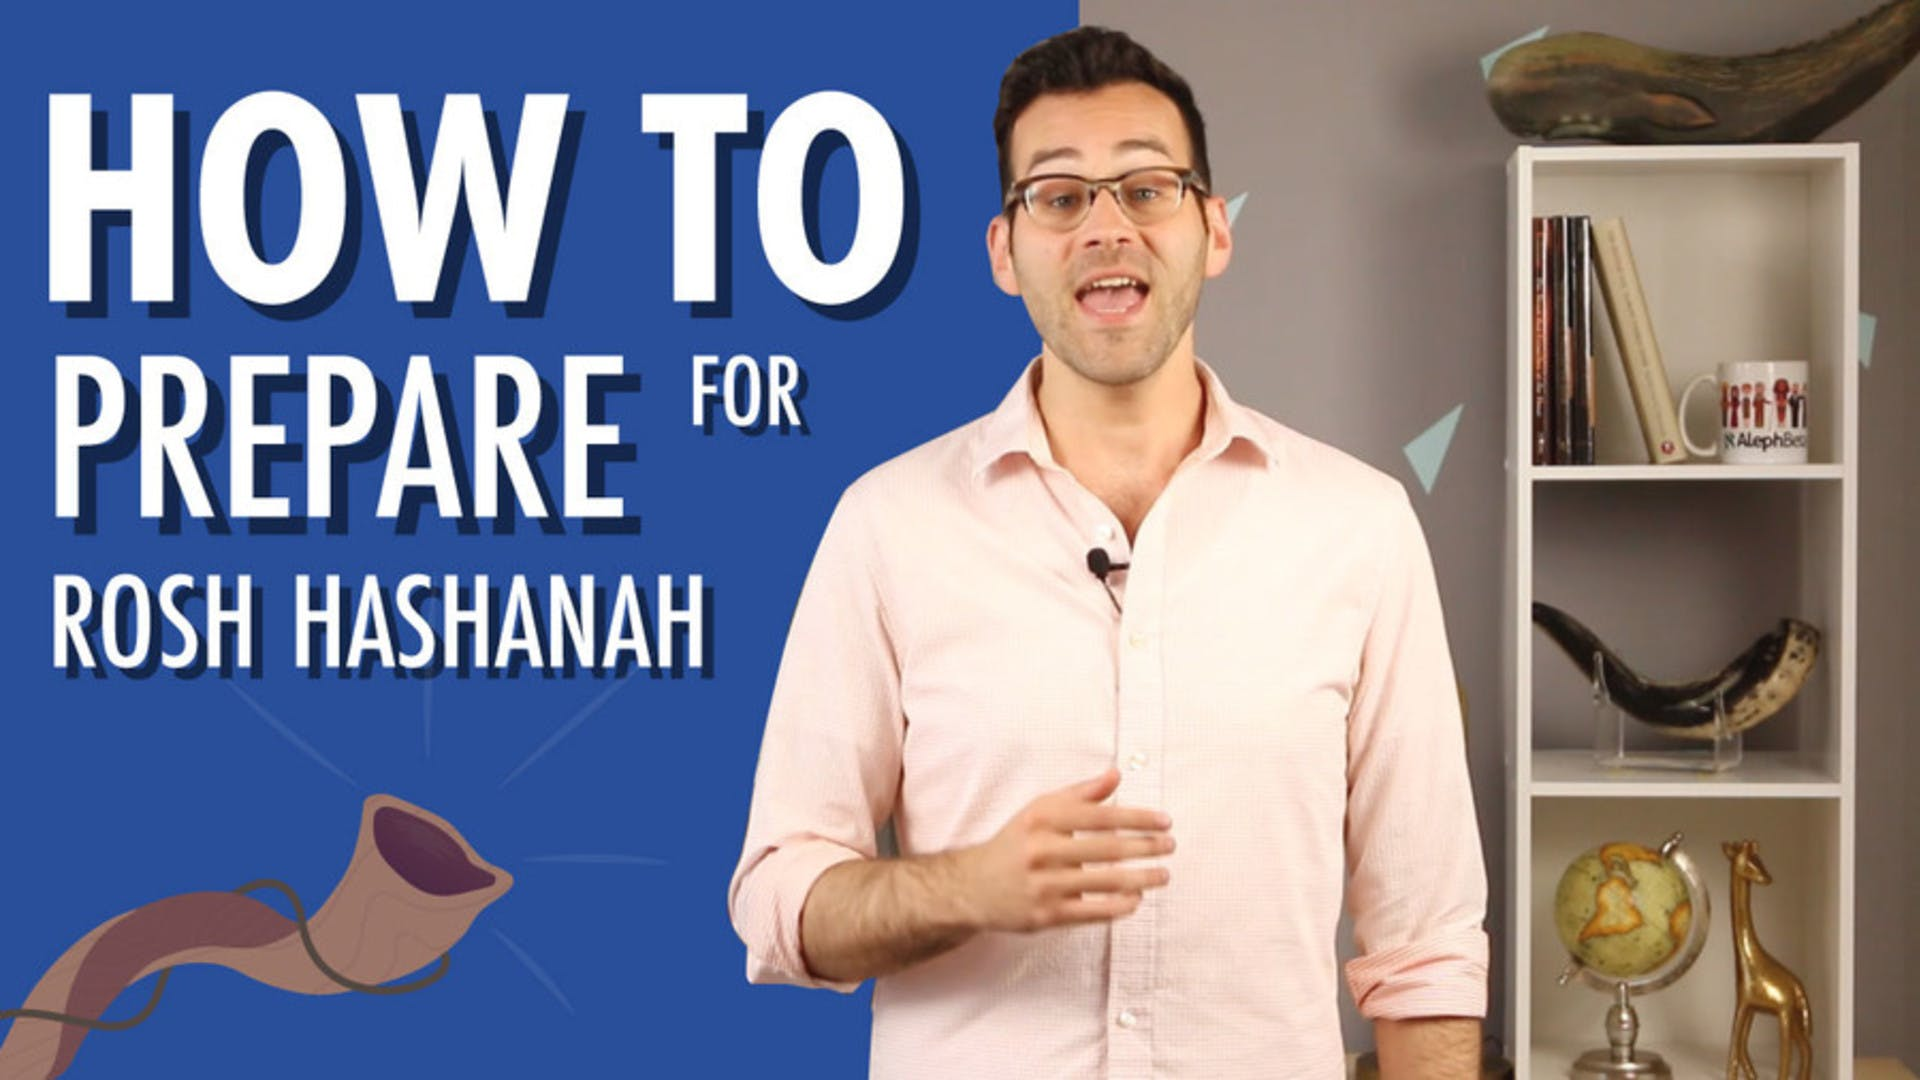 rosh hashanah spiritual preparation guide